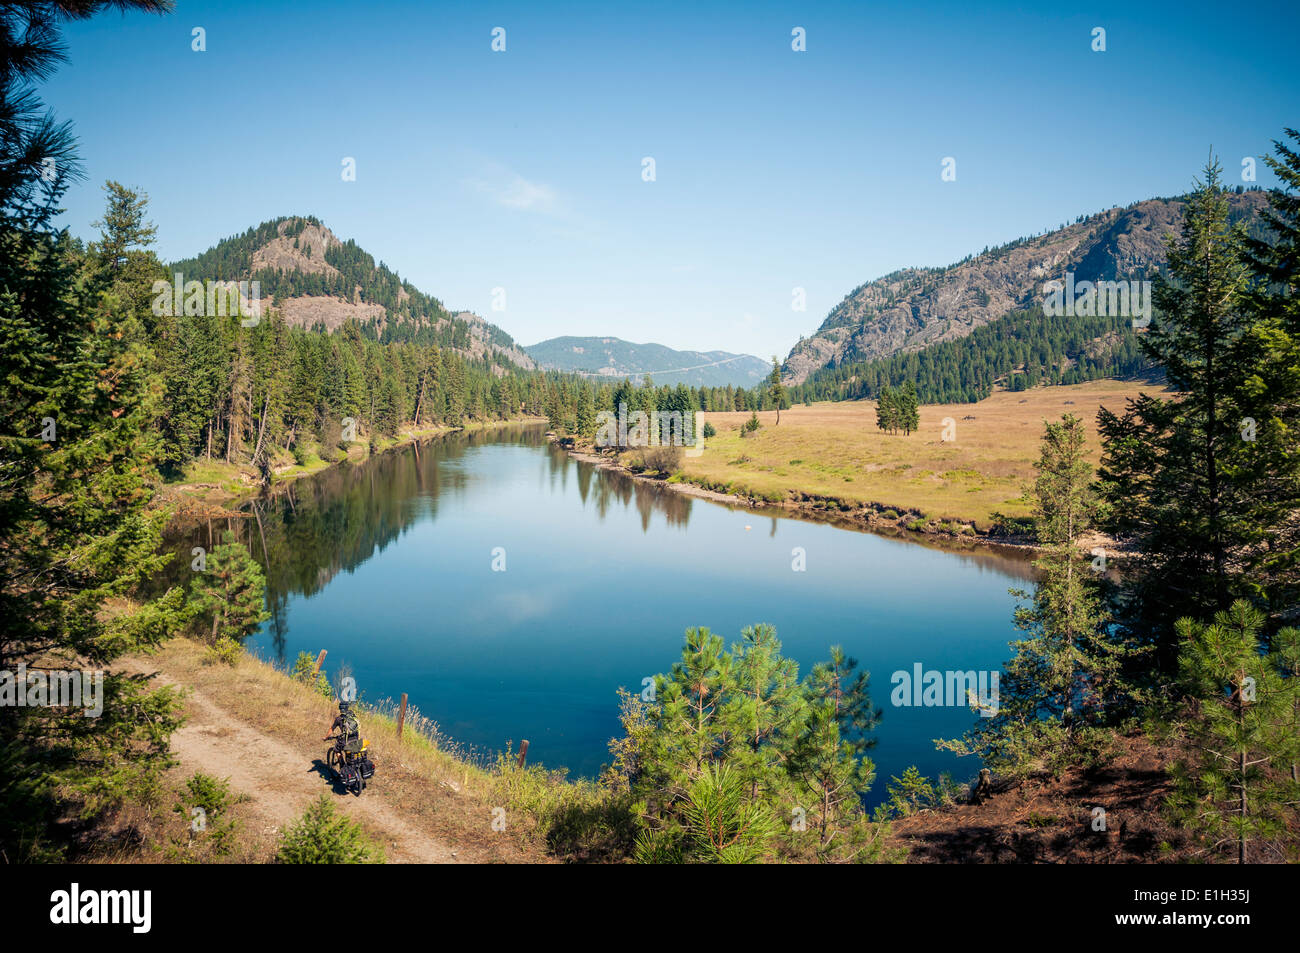 Male cyclist in Kettle Valley Rail-Trail/Kettle Valley Railway/KVR Trail next the Kettle Valley River, British Columbia, - Stock Image